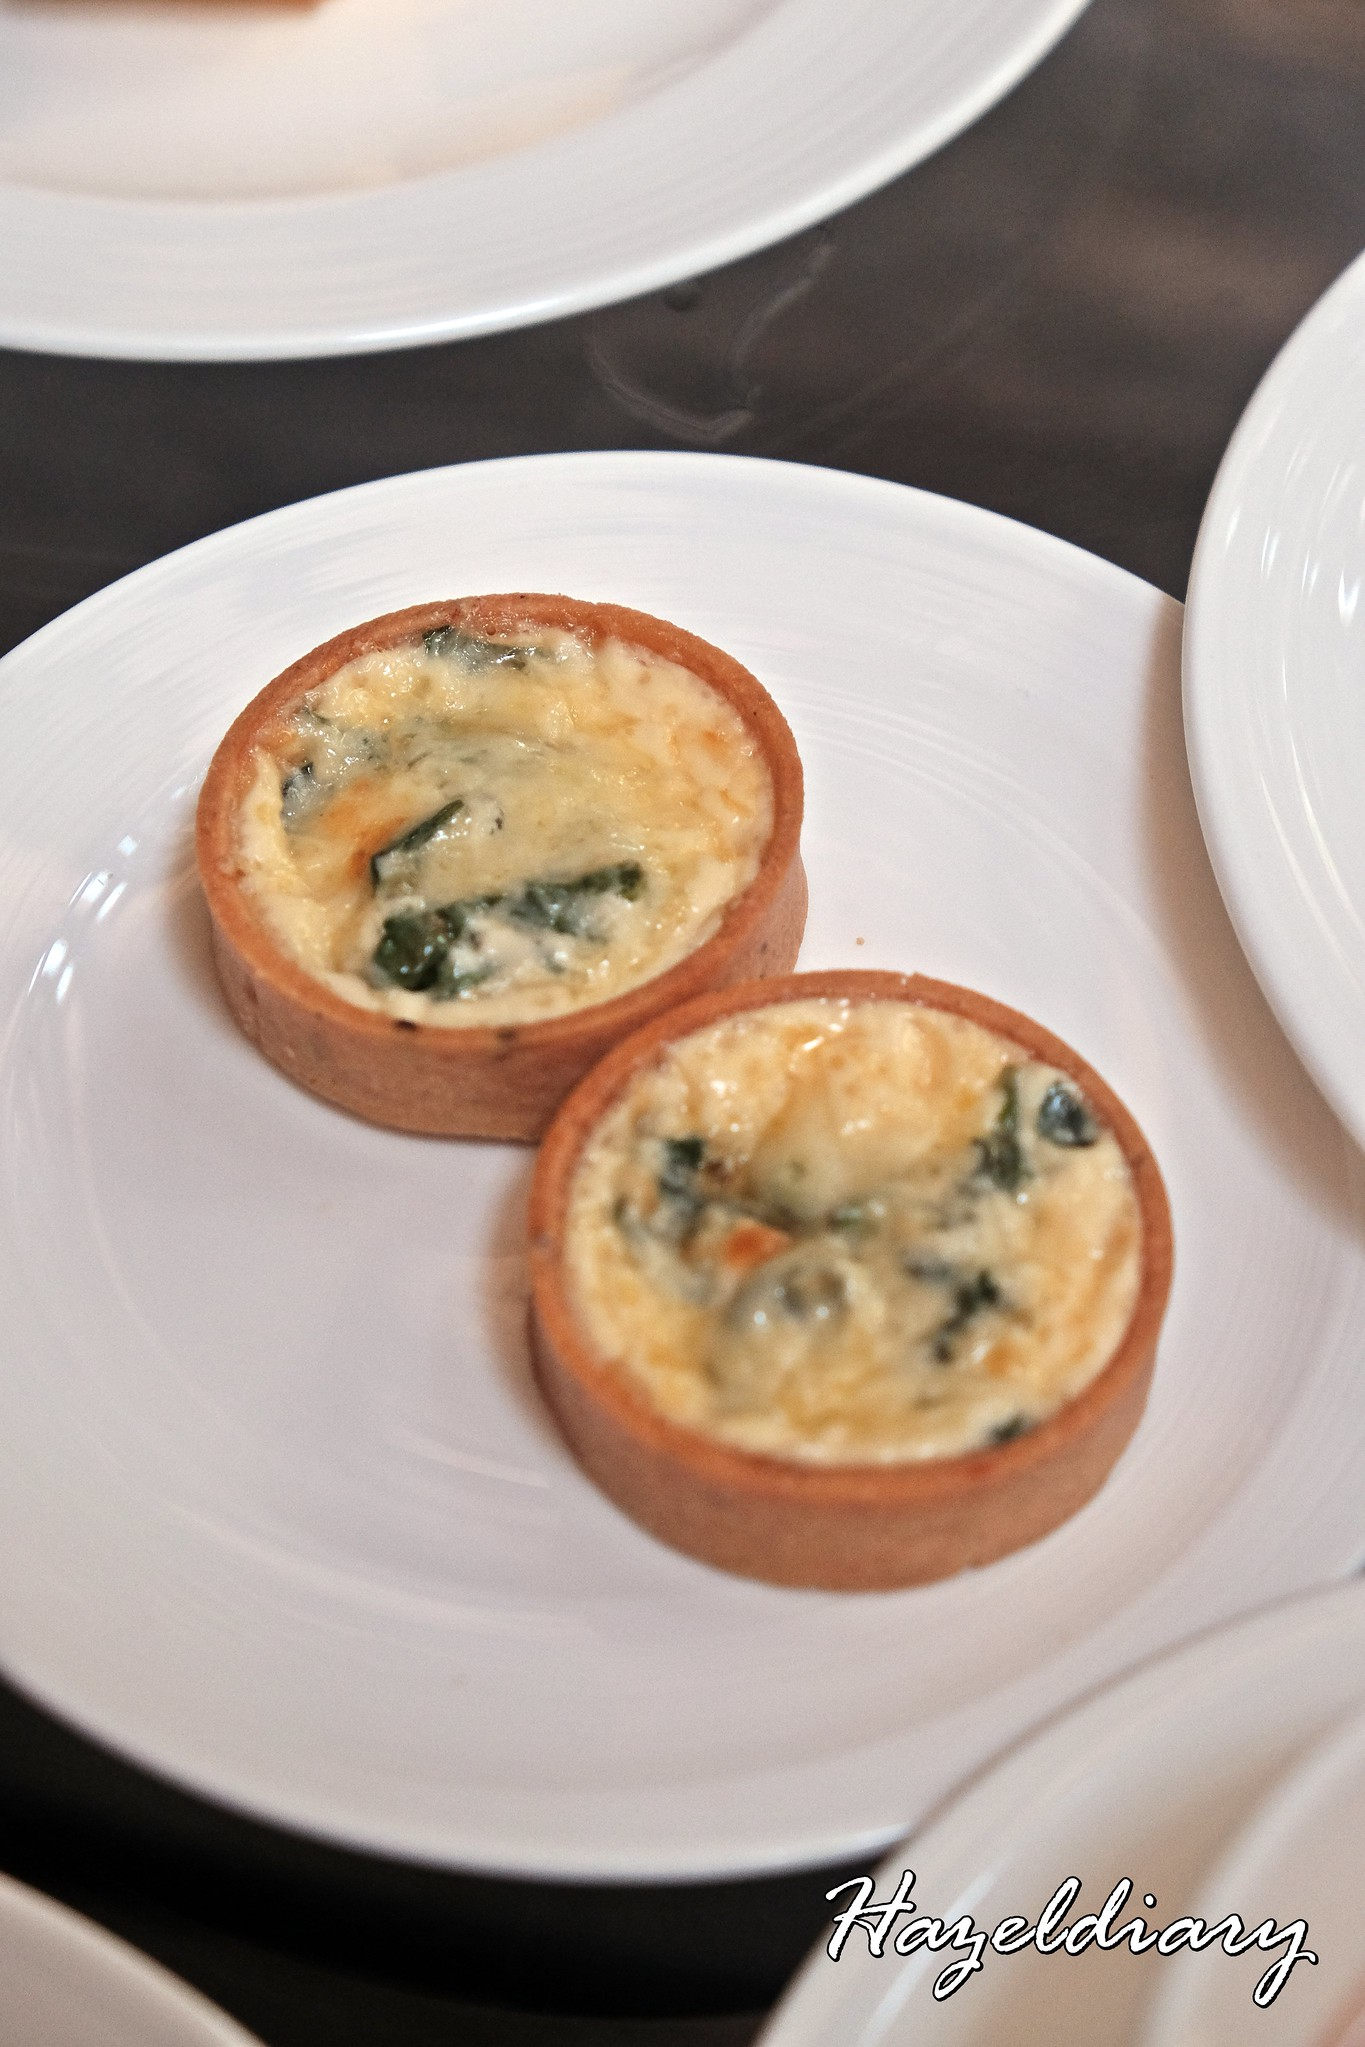 Floral Weekend High Tea-One Ninety Bar Four Seasons Hotel Singapore-Spinach and Cheese Quiche